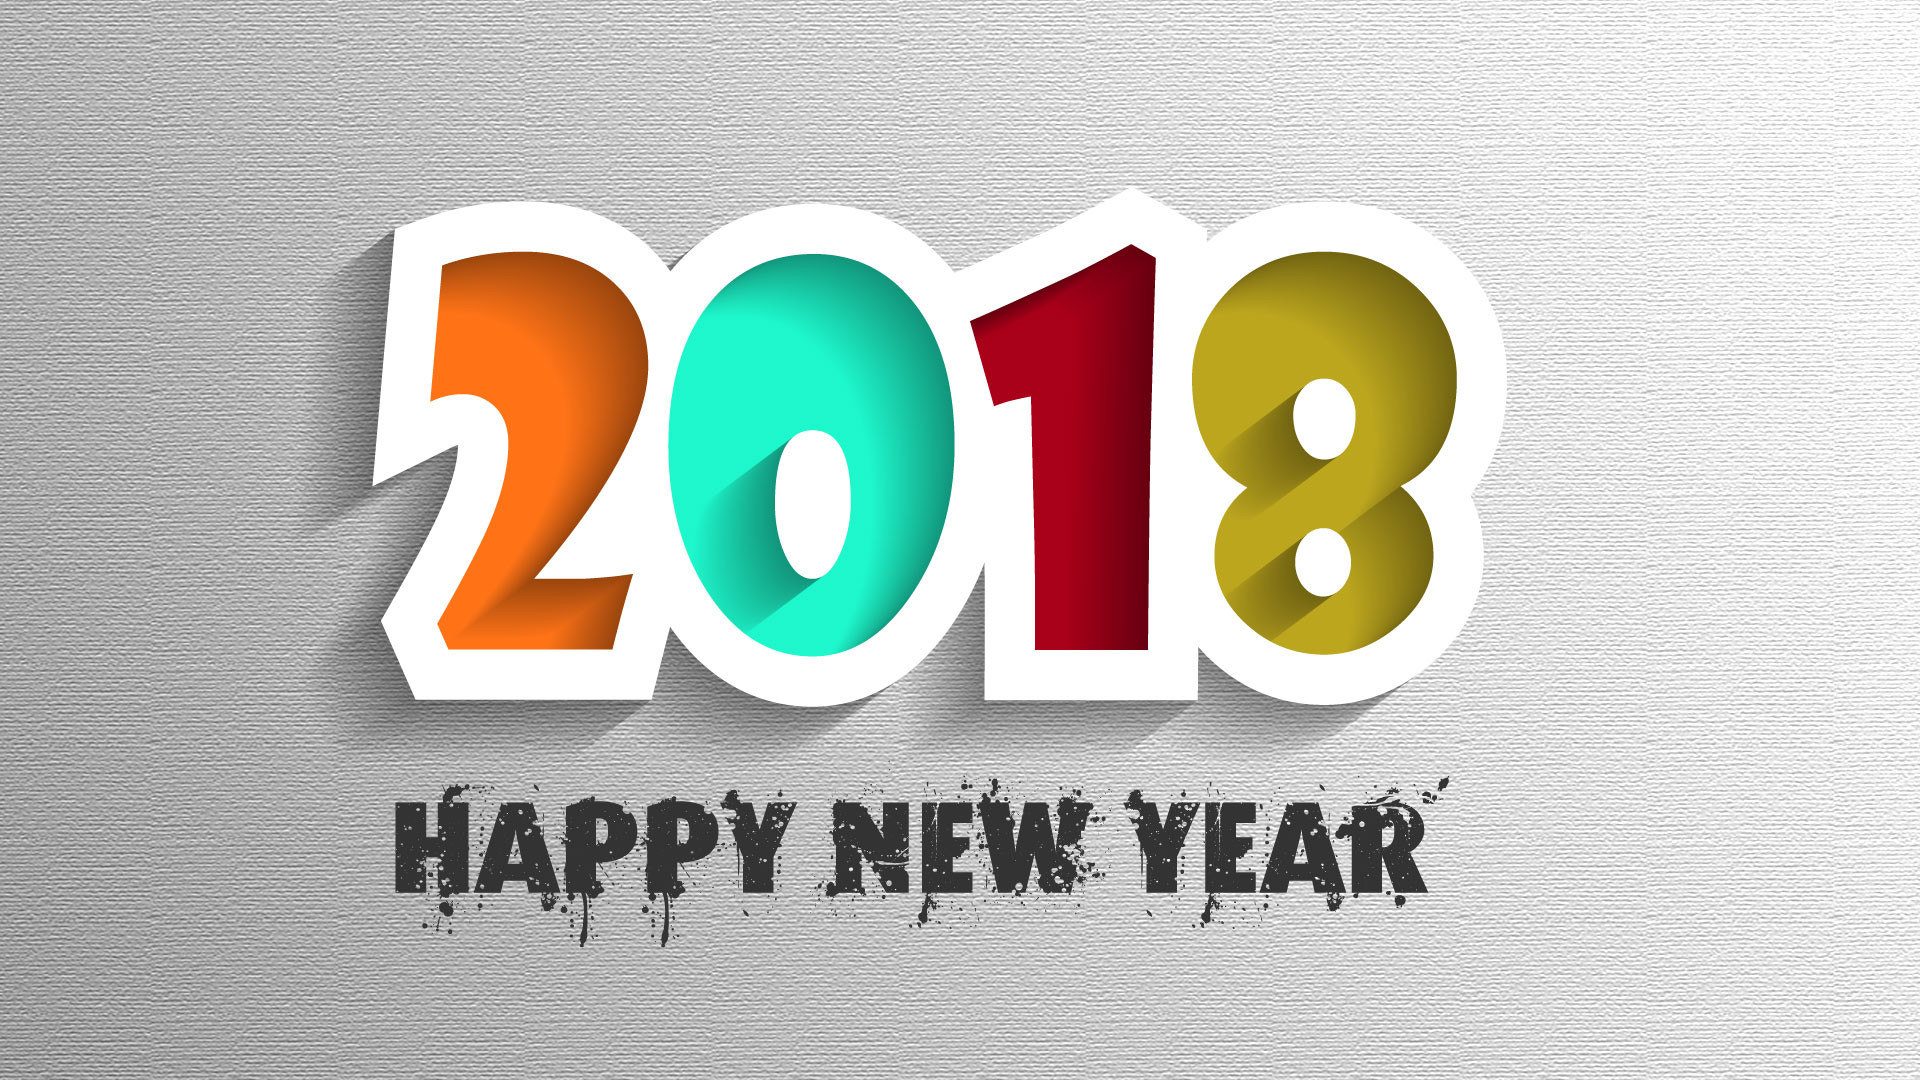 1920x1080 2018 happy new year desktop wallpaper 62291 download 1920x1080